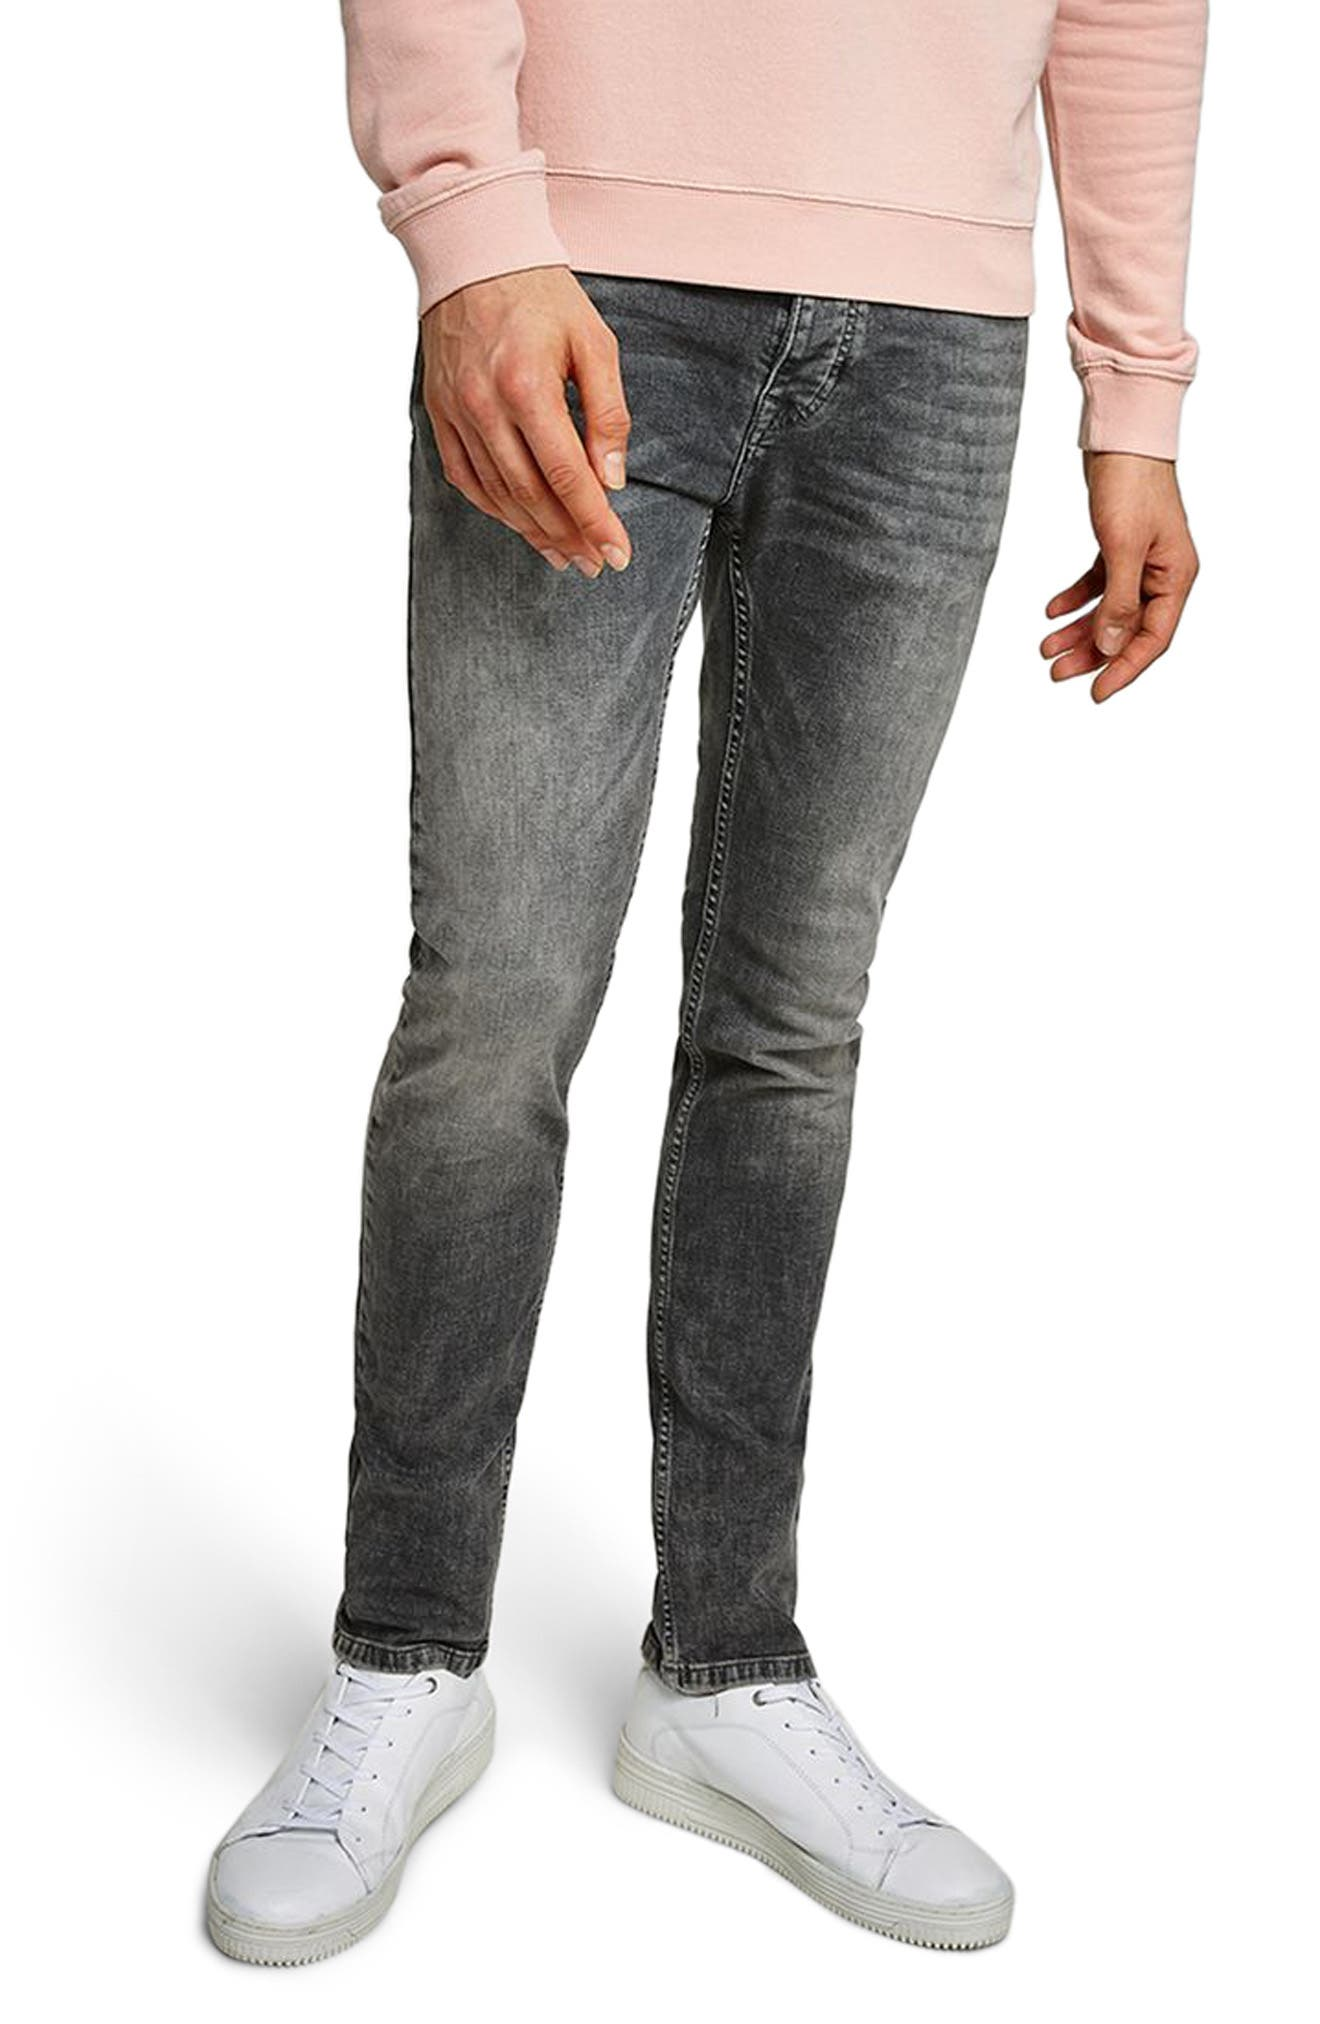 Grey Stretch Skinny Jeans,                             Main thumbnail 1, color,                             020